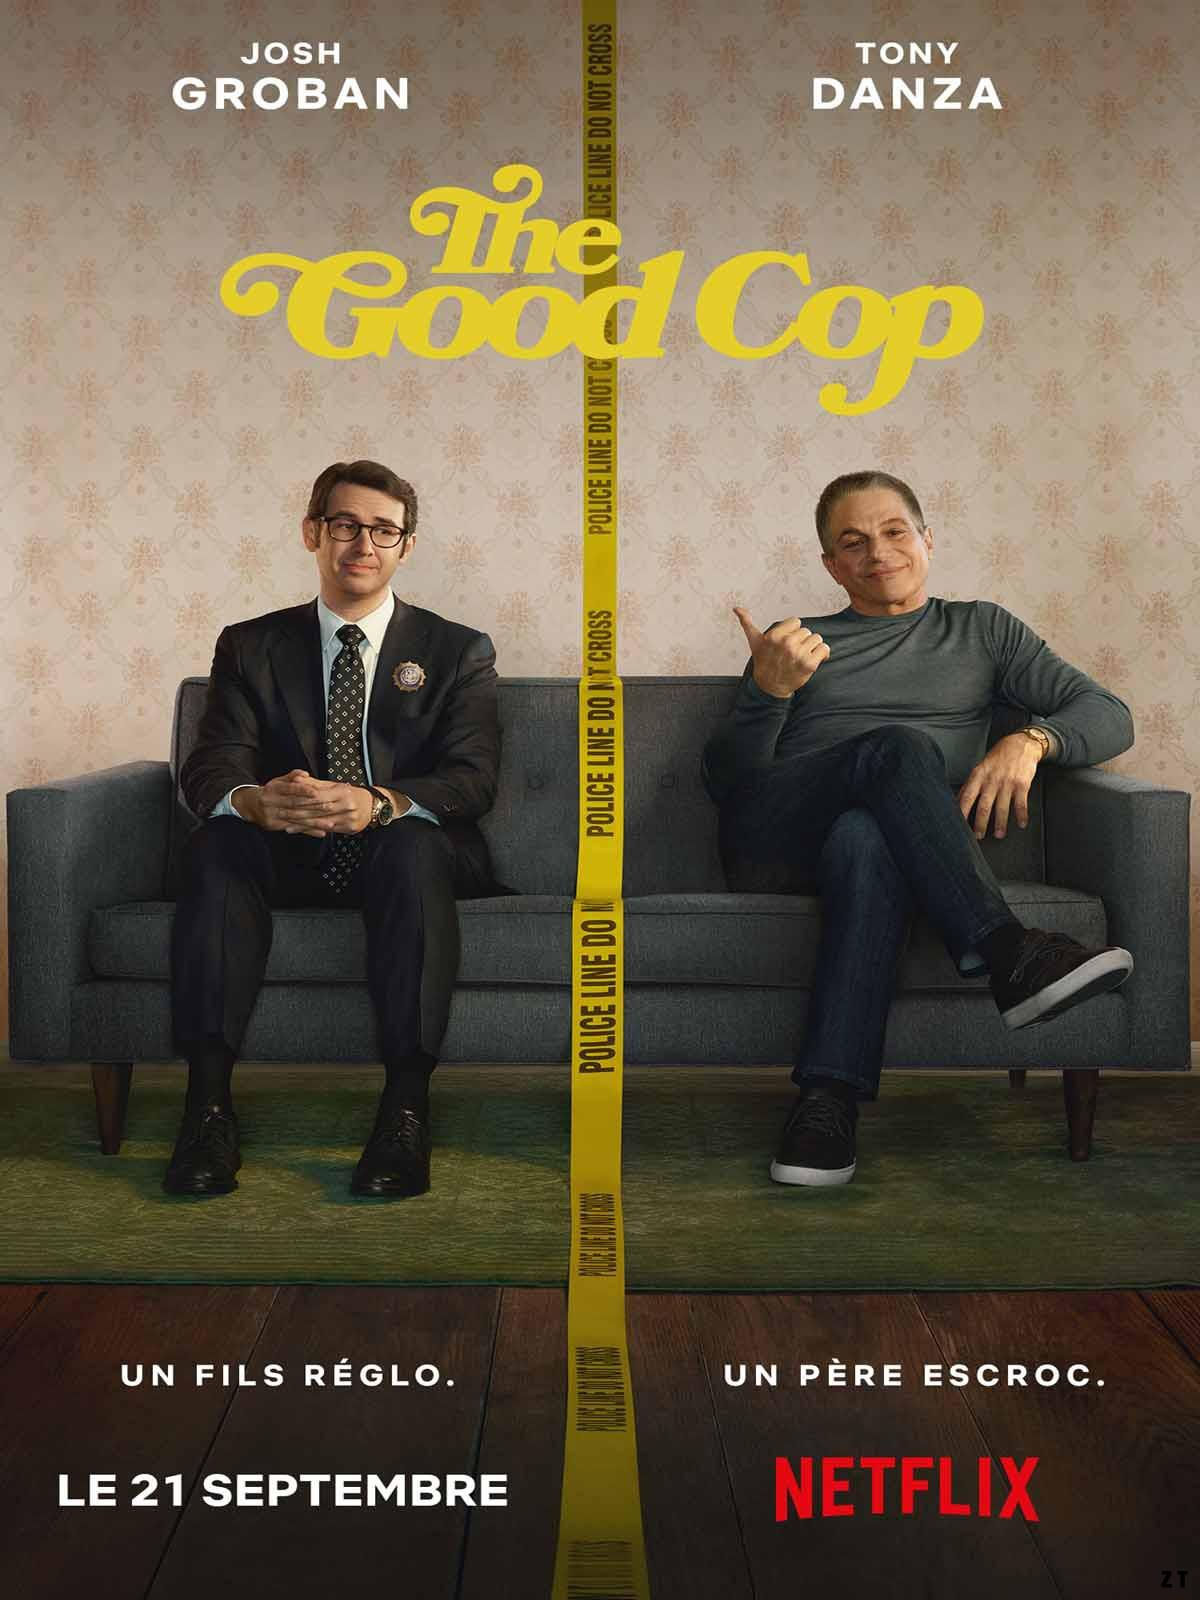 Telecharger The Good Cop- Saison 1 [COMPLETE] [10/10] FRENCH | Qualité HD 720p